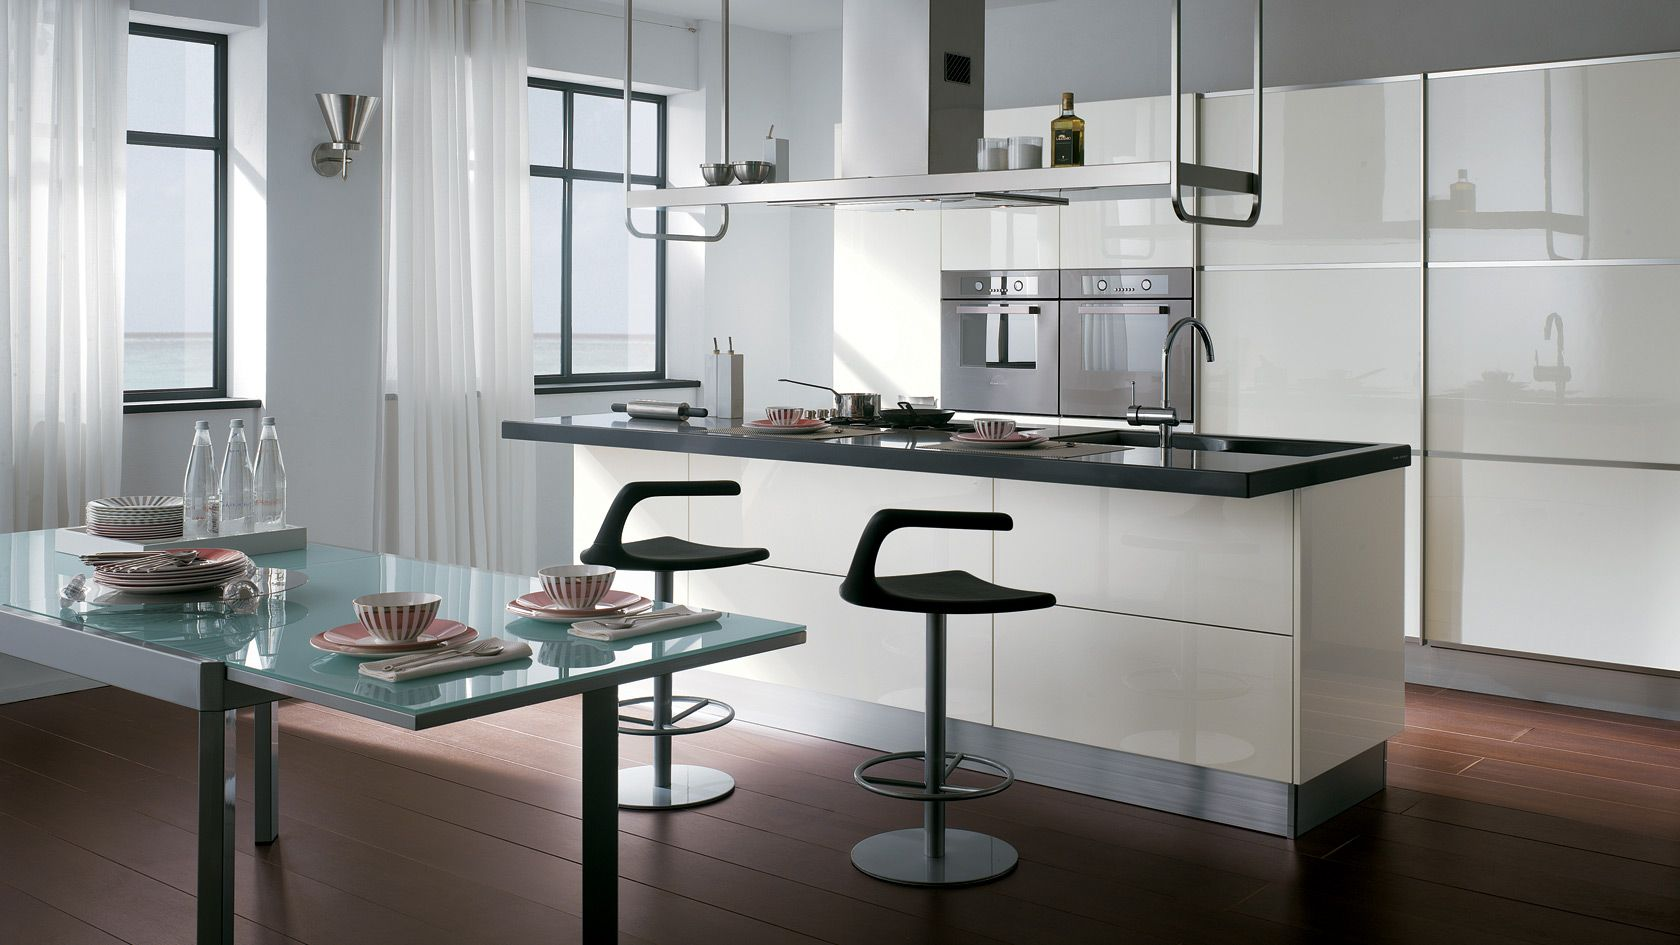 Cuisine Mood Scavolini | cuisines | Pinterest | Cucina, Kitchens and ...